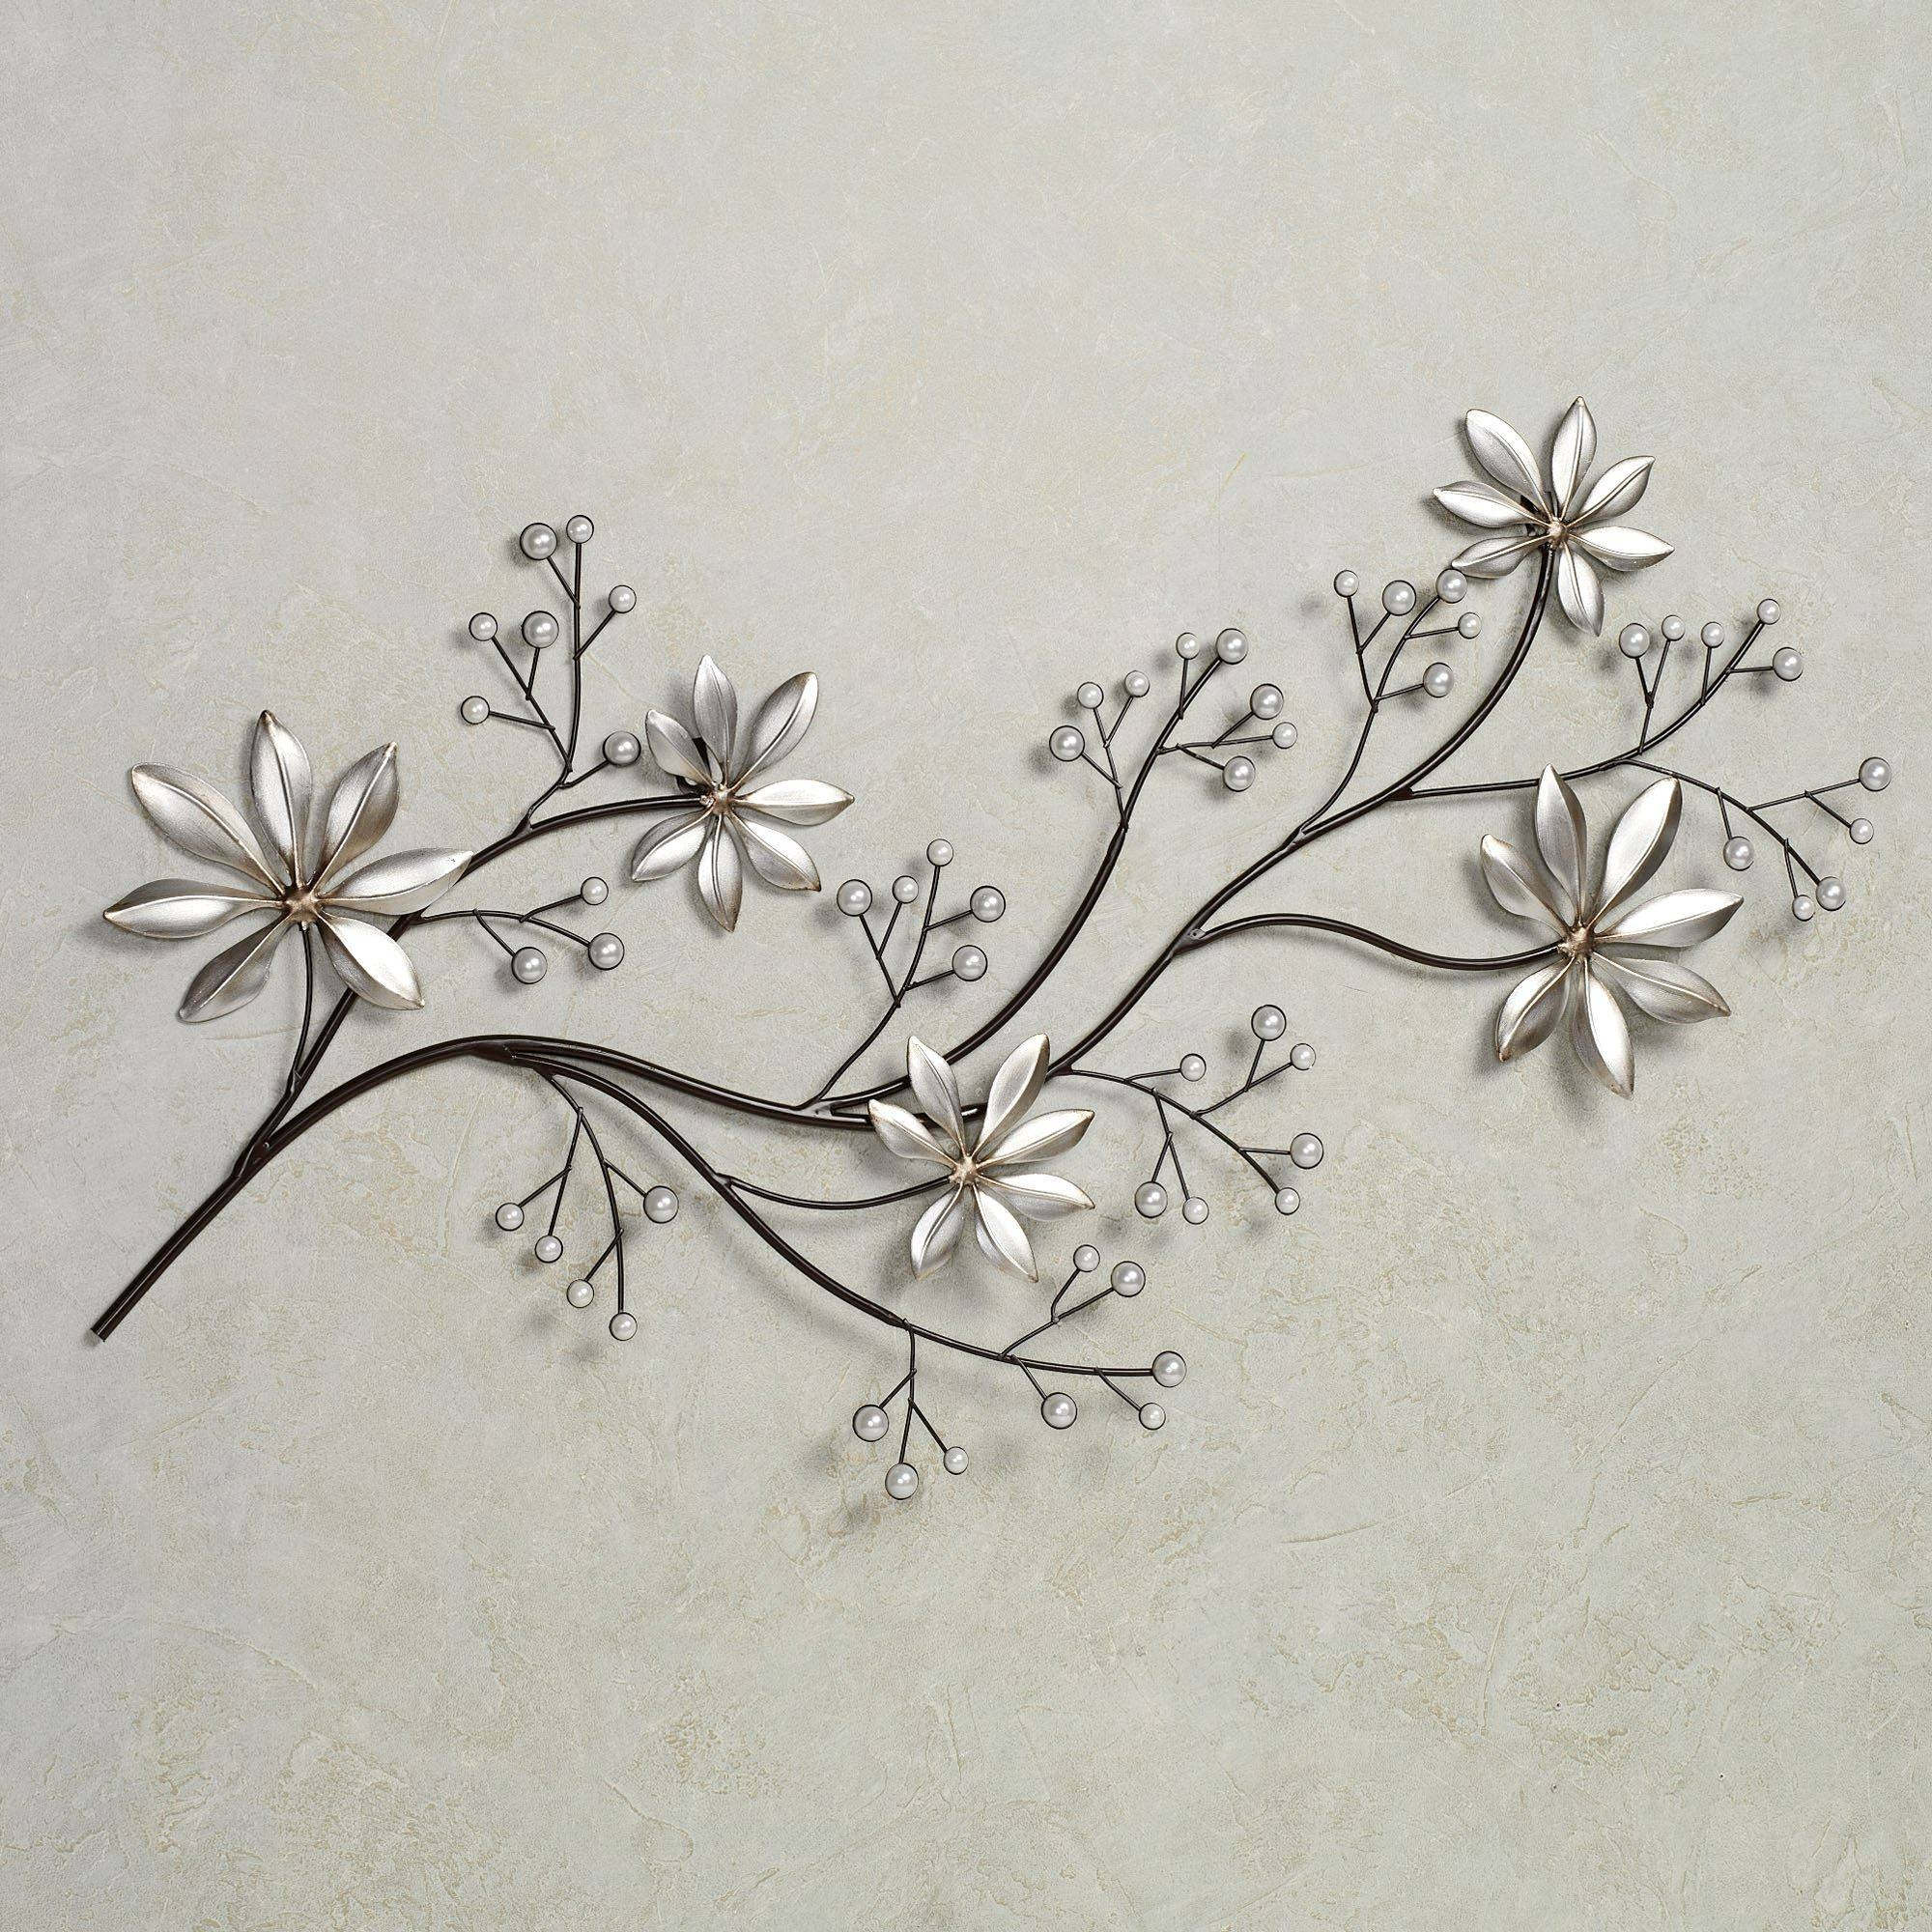 Pearl Array Floral Metal Wall Art Pertaining To Newest Branches Metal Wall Art (View 13 of 20)